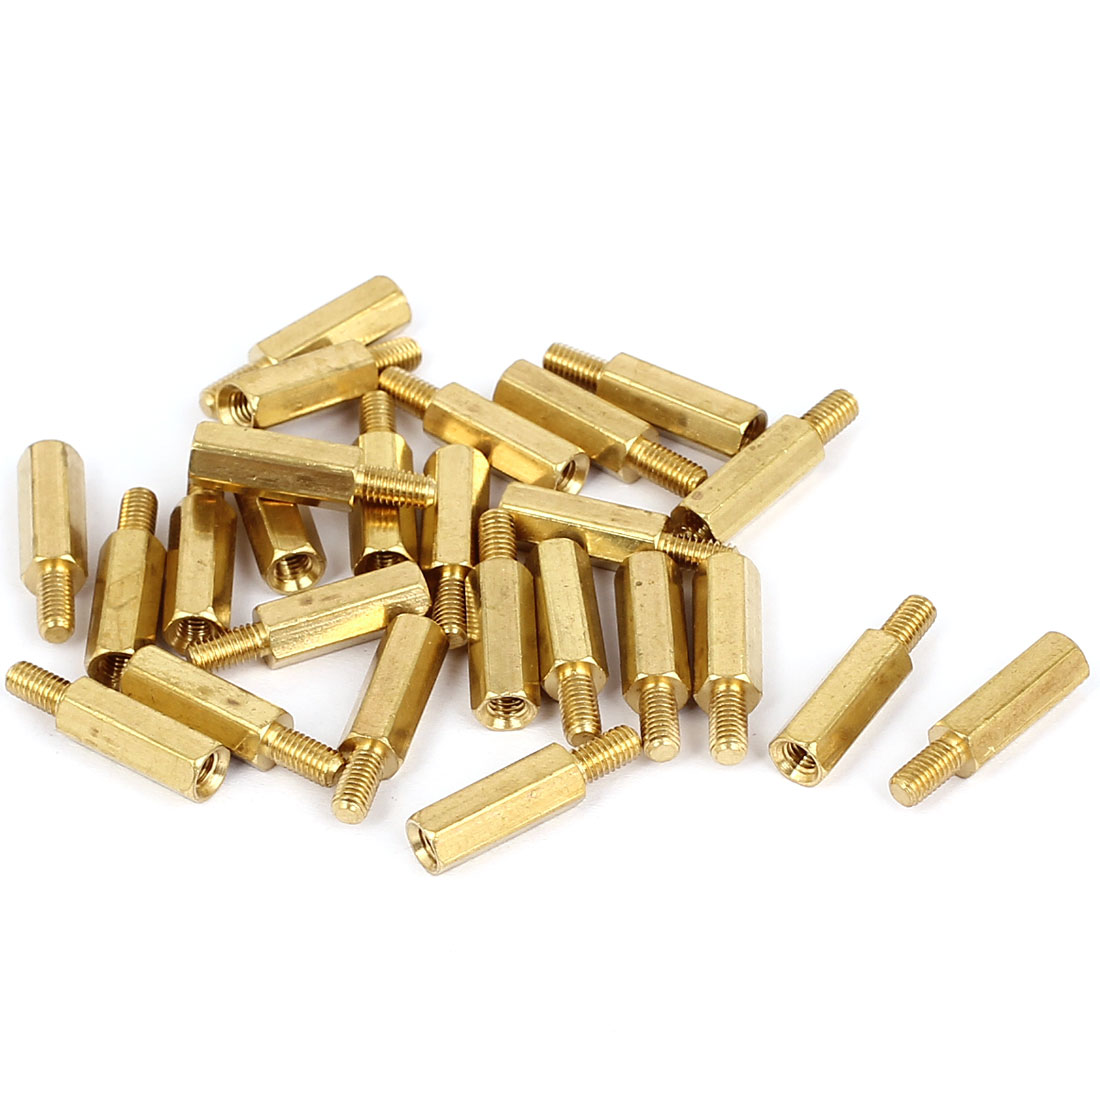 M3x13+6mm Female/Male Thread Brass Hex Standoff Pillar Spacer Coupler Nut 25pcs